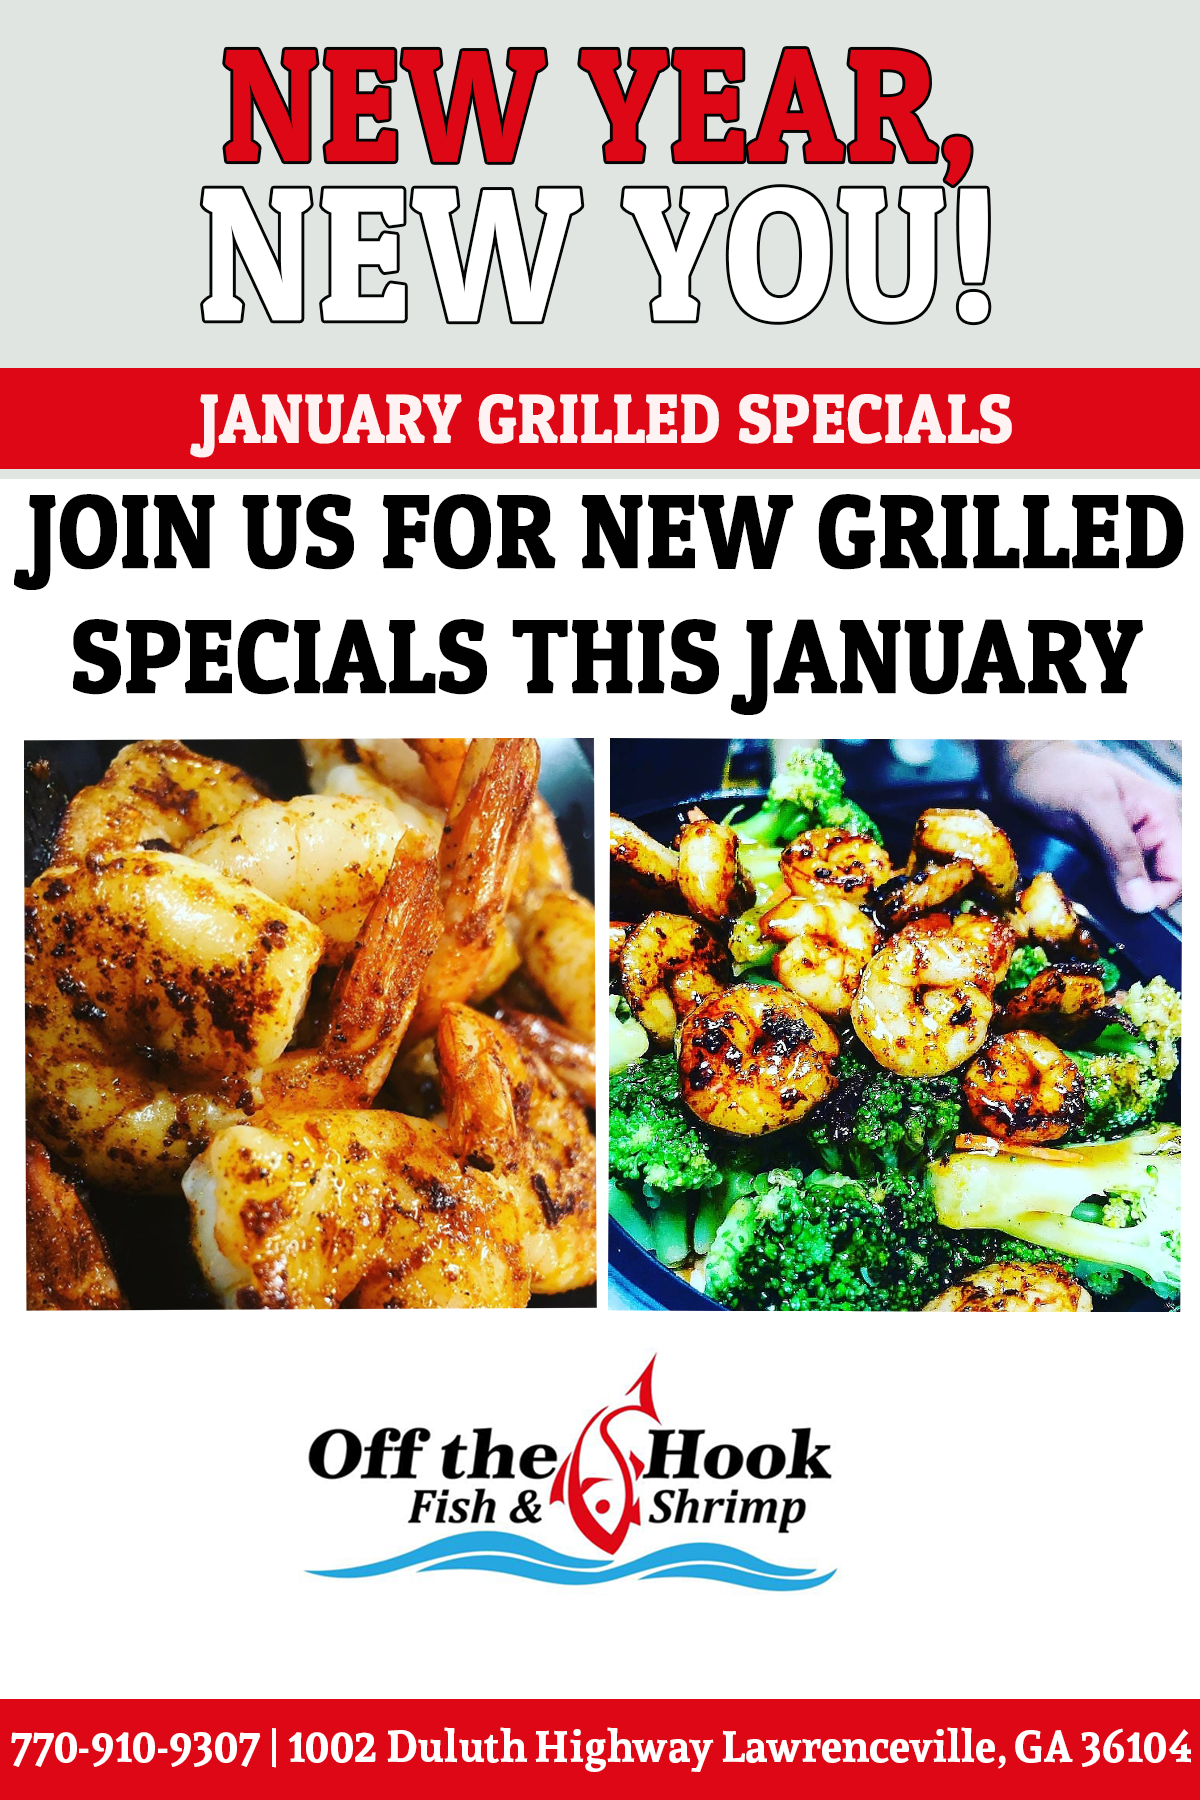 January Grilled Specials